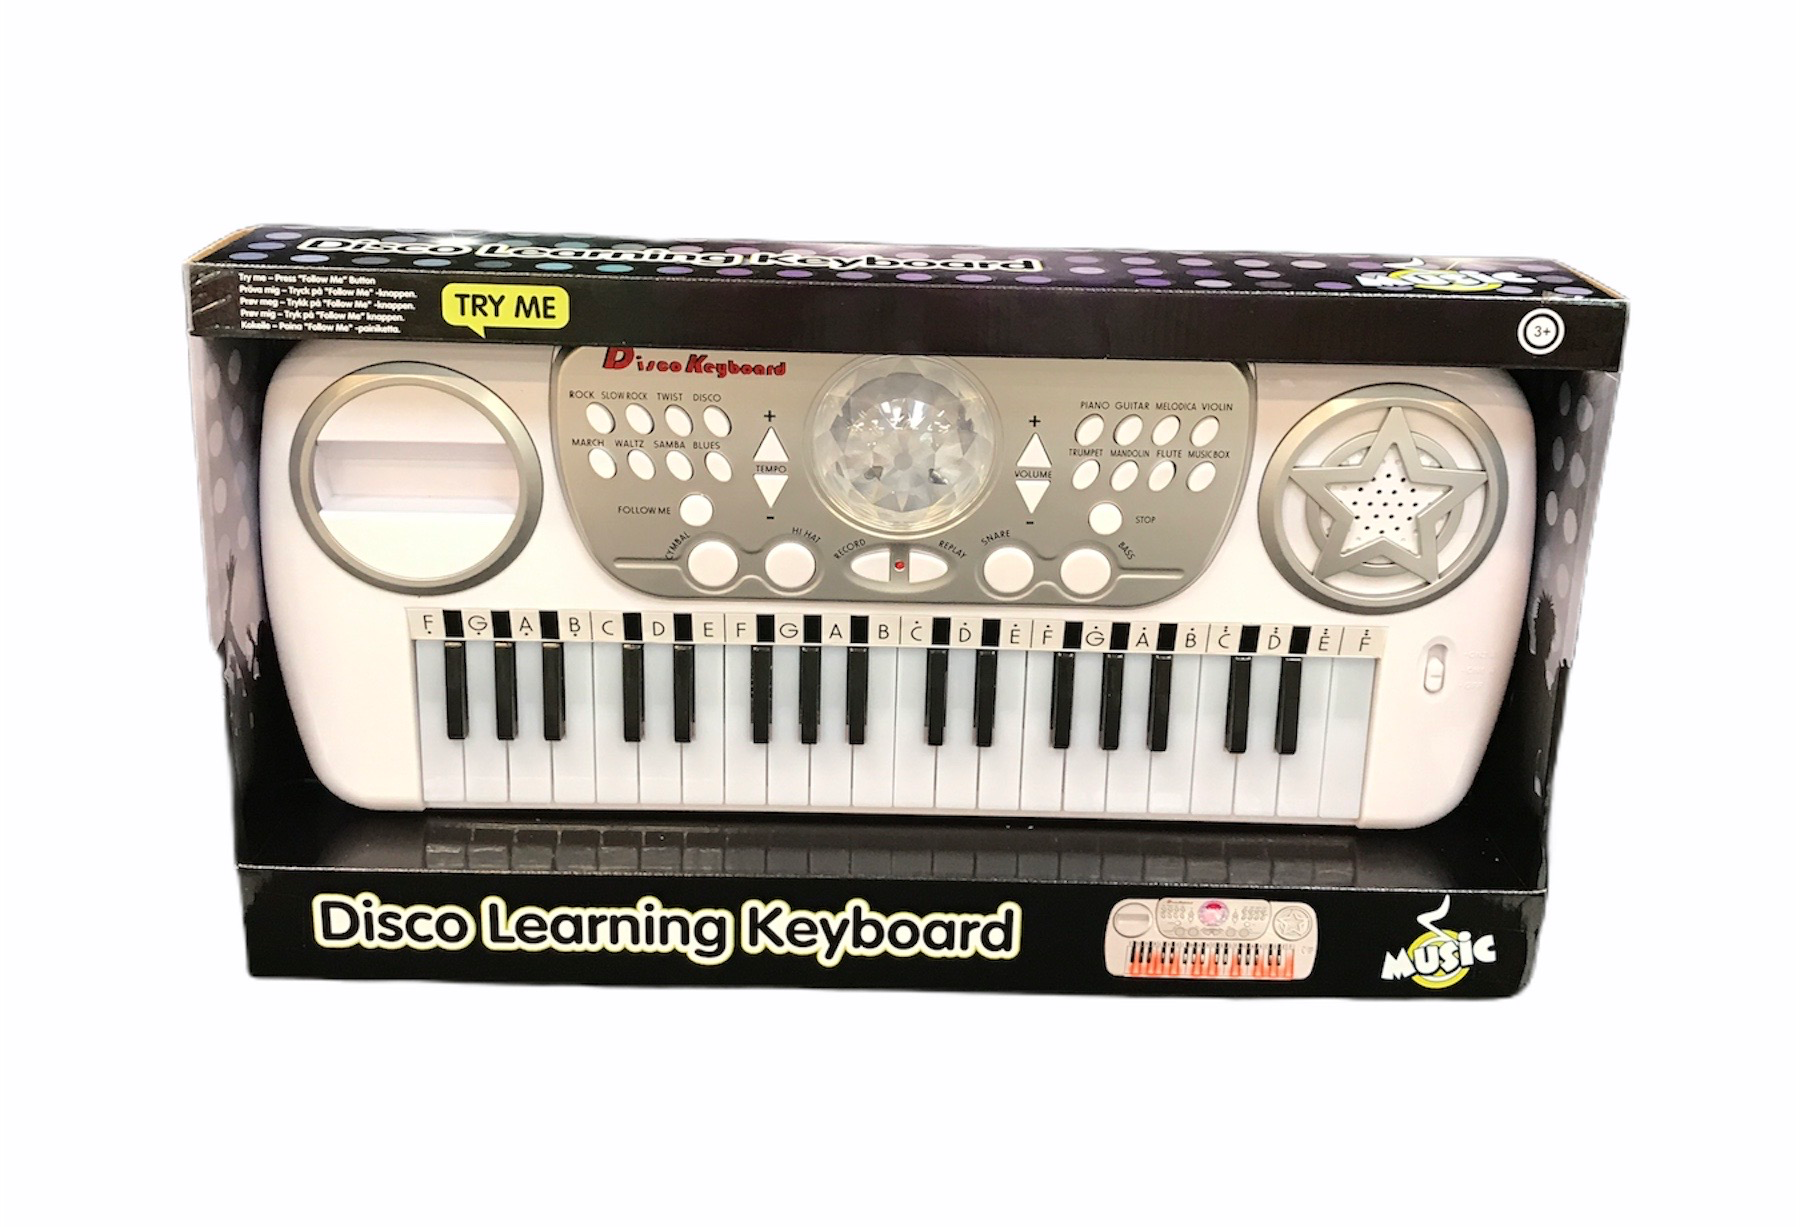 Disco Learning Keyboard